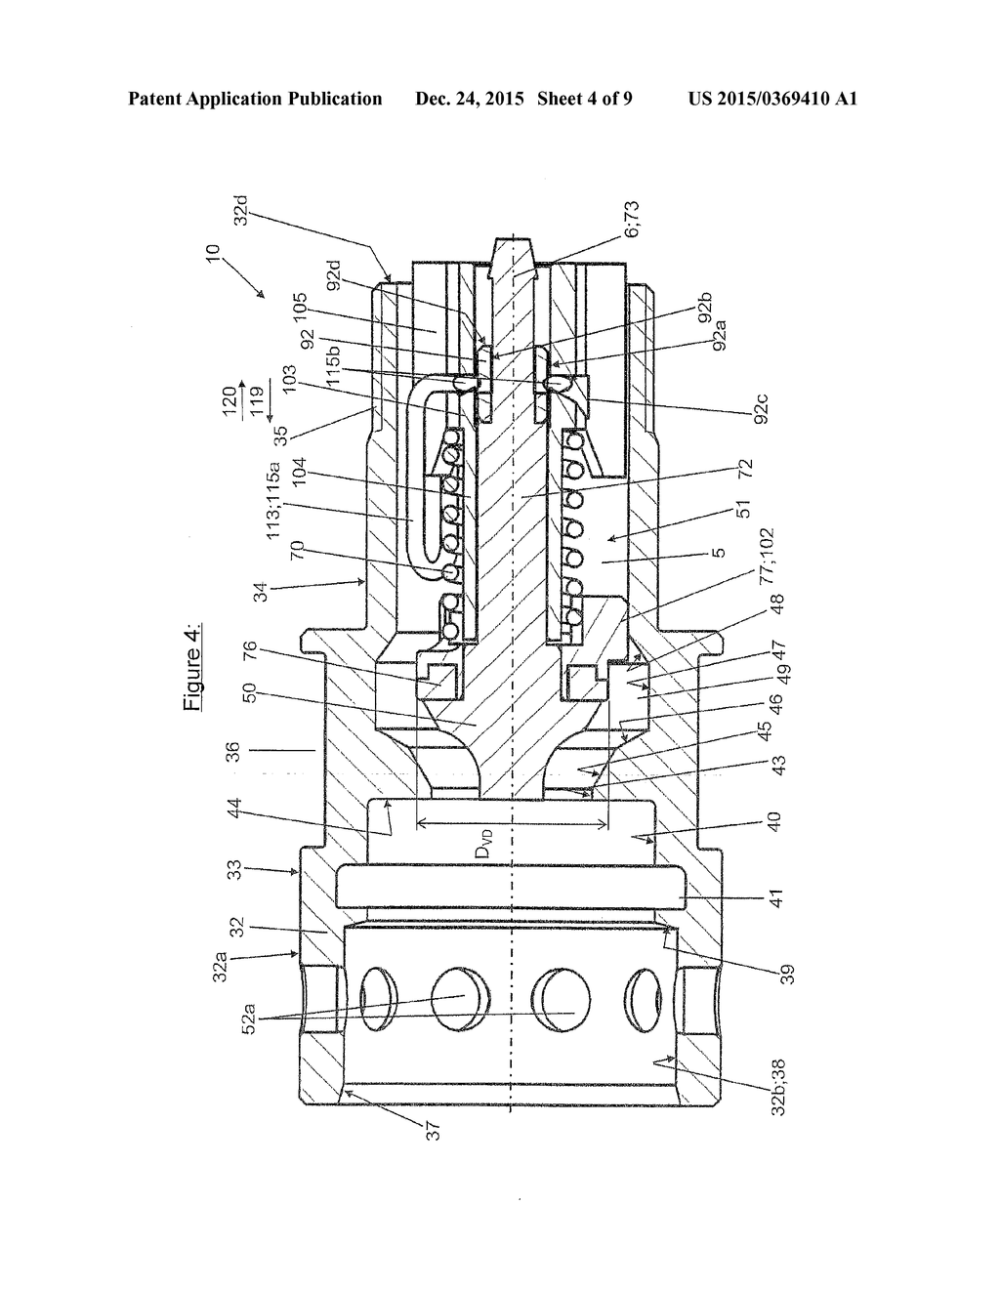 medium resolution of 05 f150 engine diagram wiring librarycoupling part for a quick release coupling for high pressure hydraulic